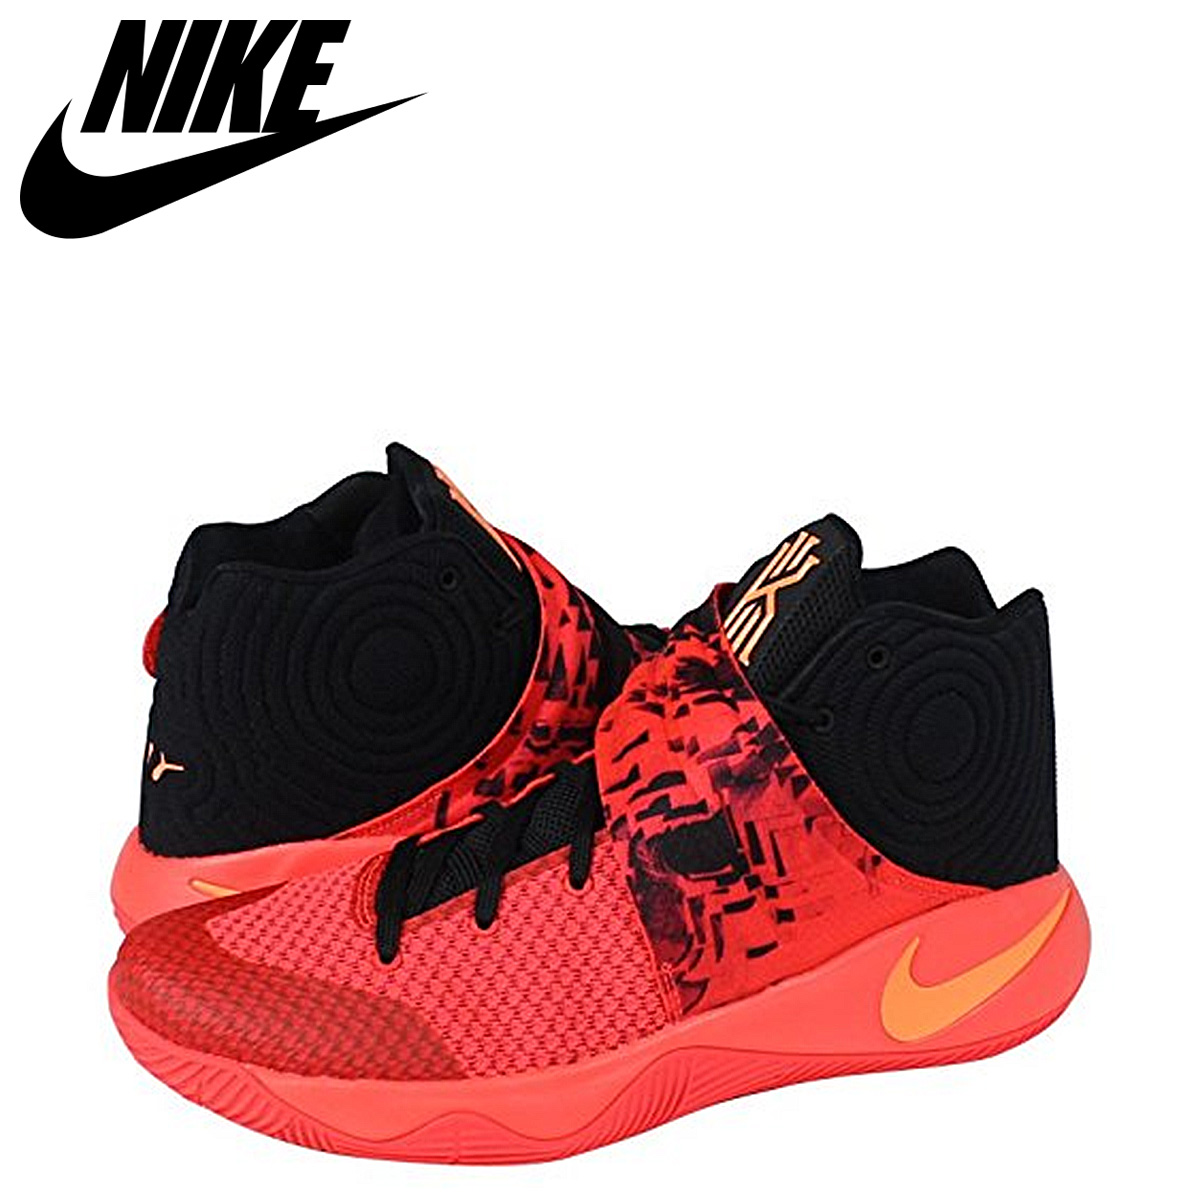 check out b2bd8 f0593 NIKE Nike chi Lee sneakers KYRIE 2 INFERNO chi Lee 2 inferno 820,537-680  crimson men